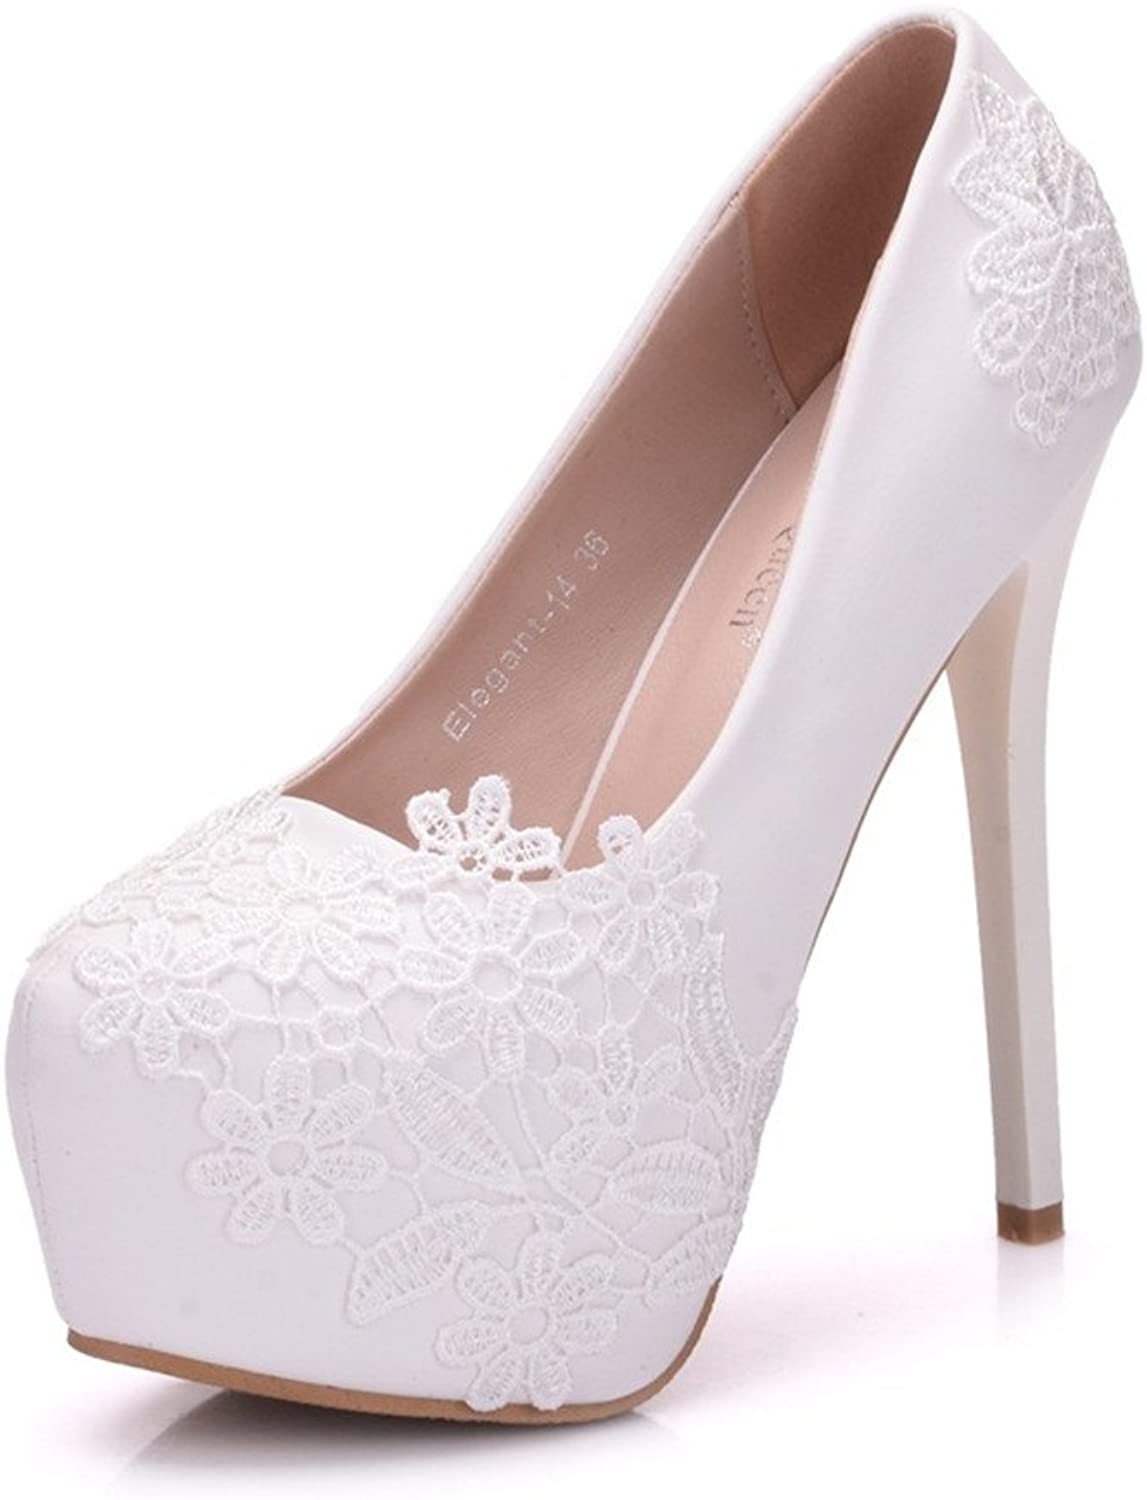 FORTUN Wedding Lace Stilettos Fashion Women's Platform shoes Round Head Closed Toe